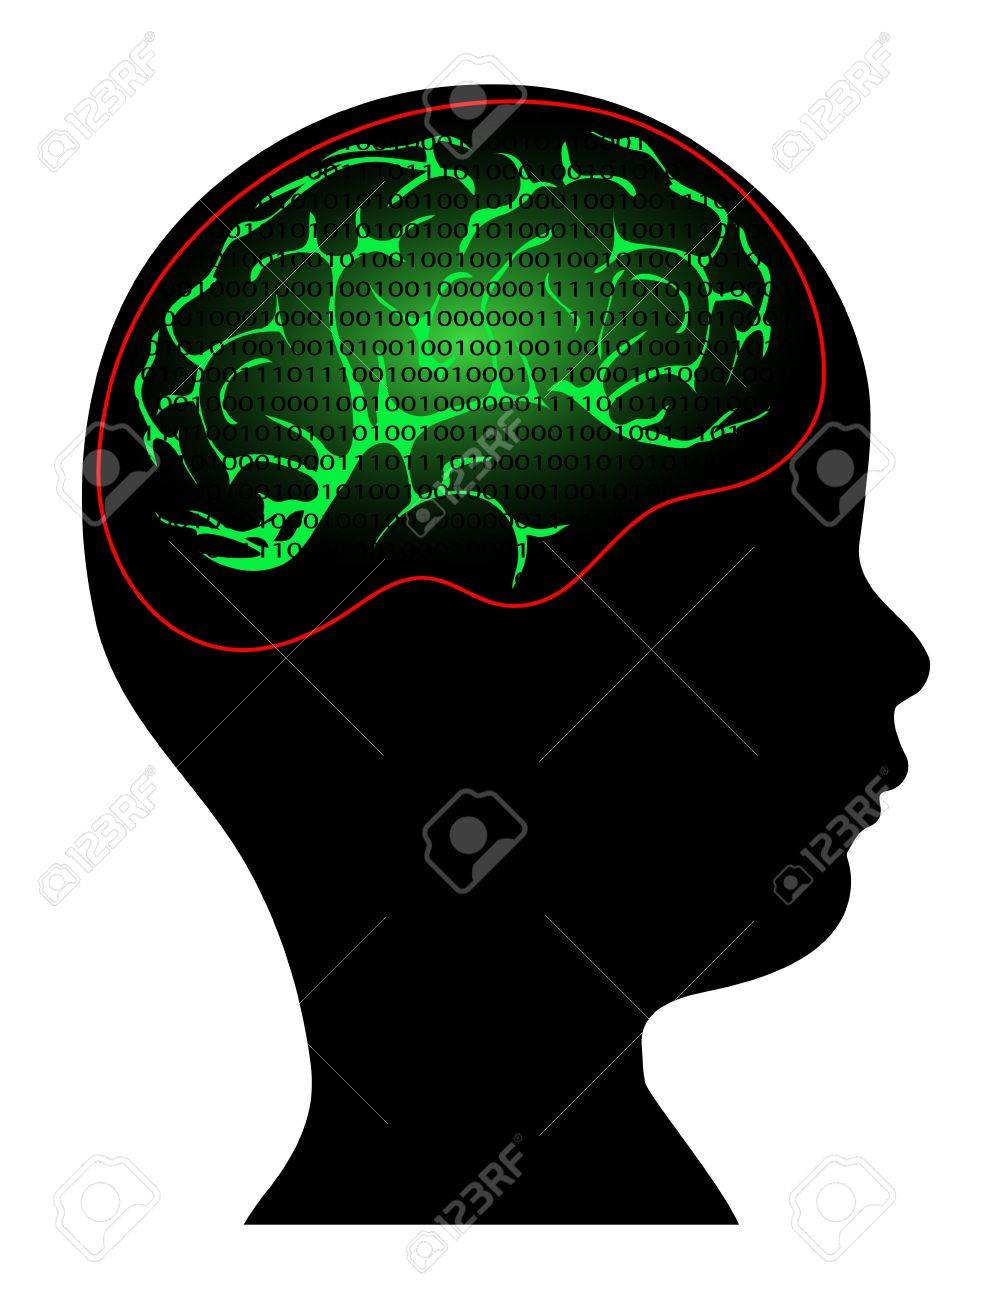 digital information in the mind of a child Stock Vector - 20775097